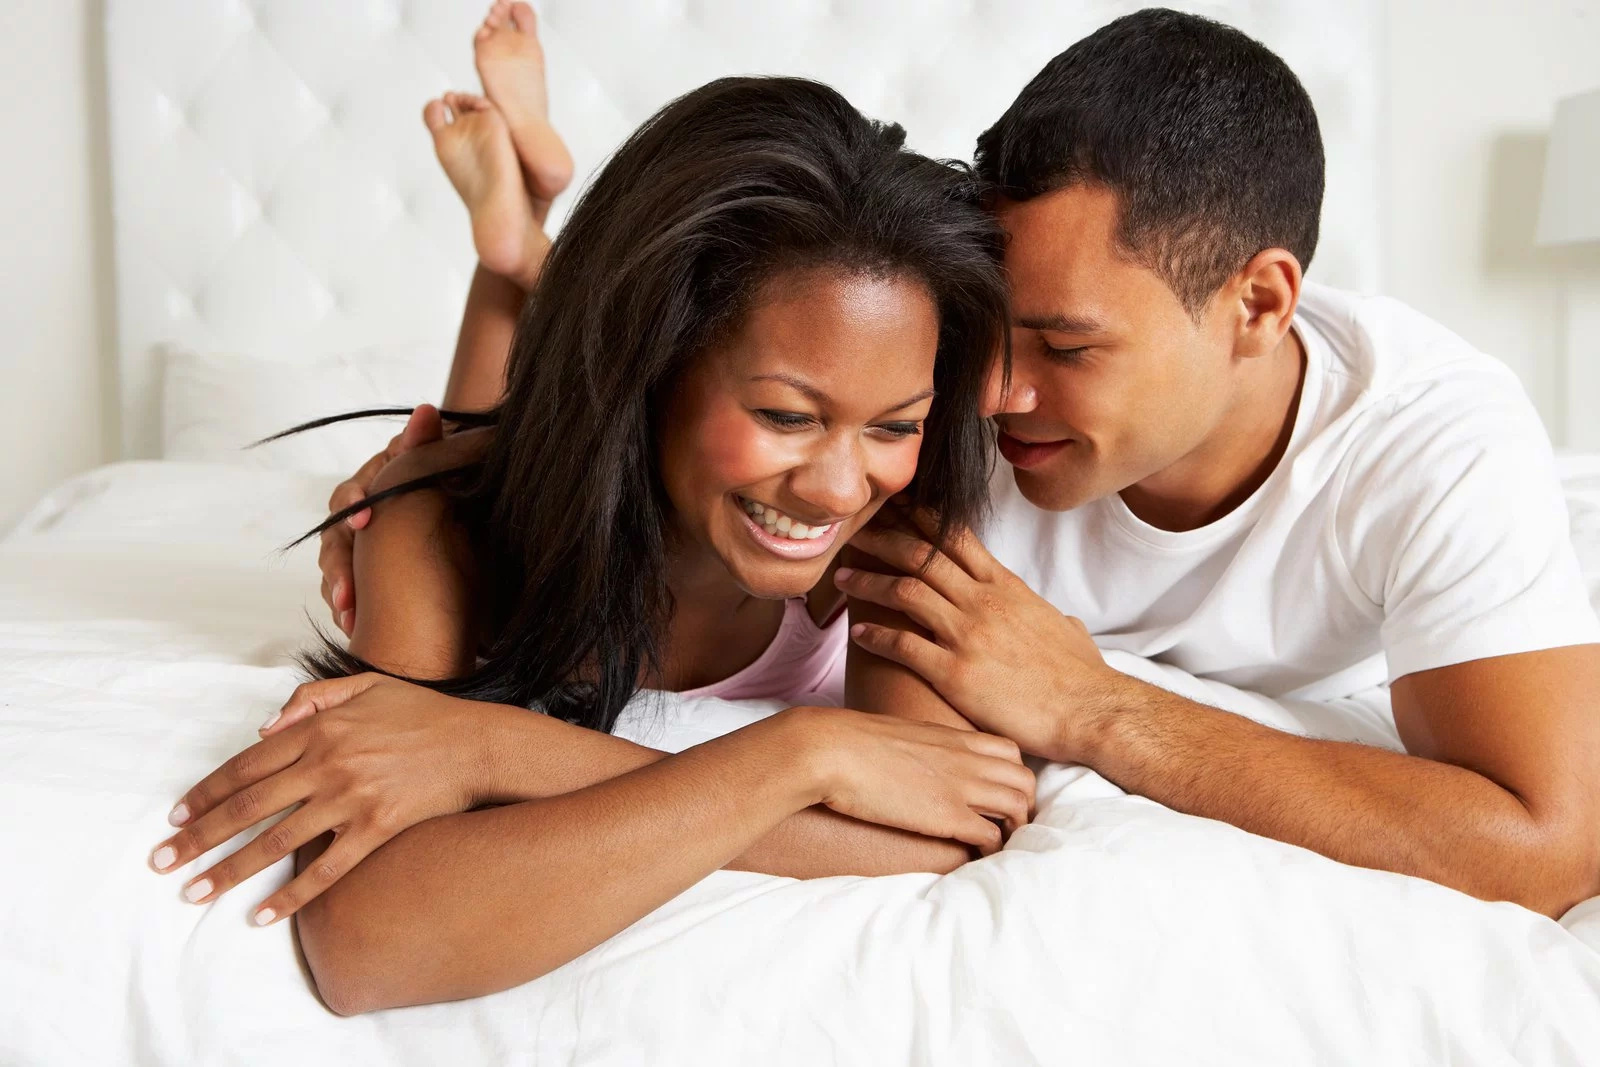 Woman confesses how she's in love with a married man